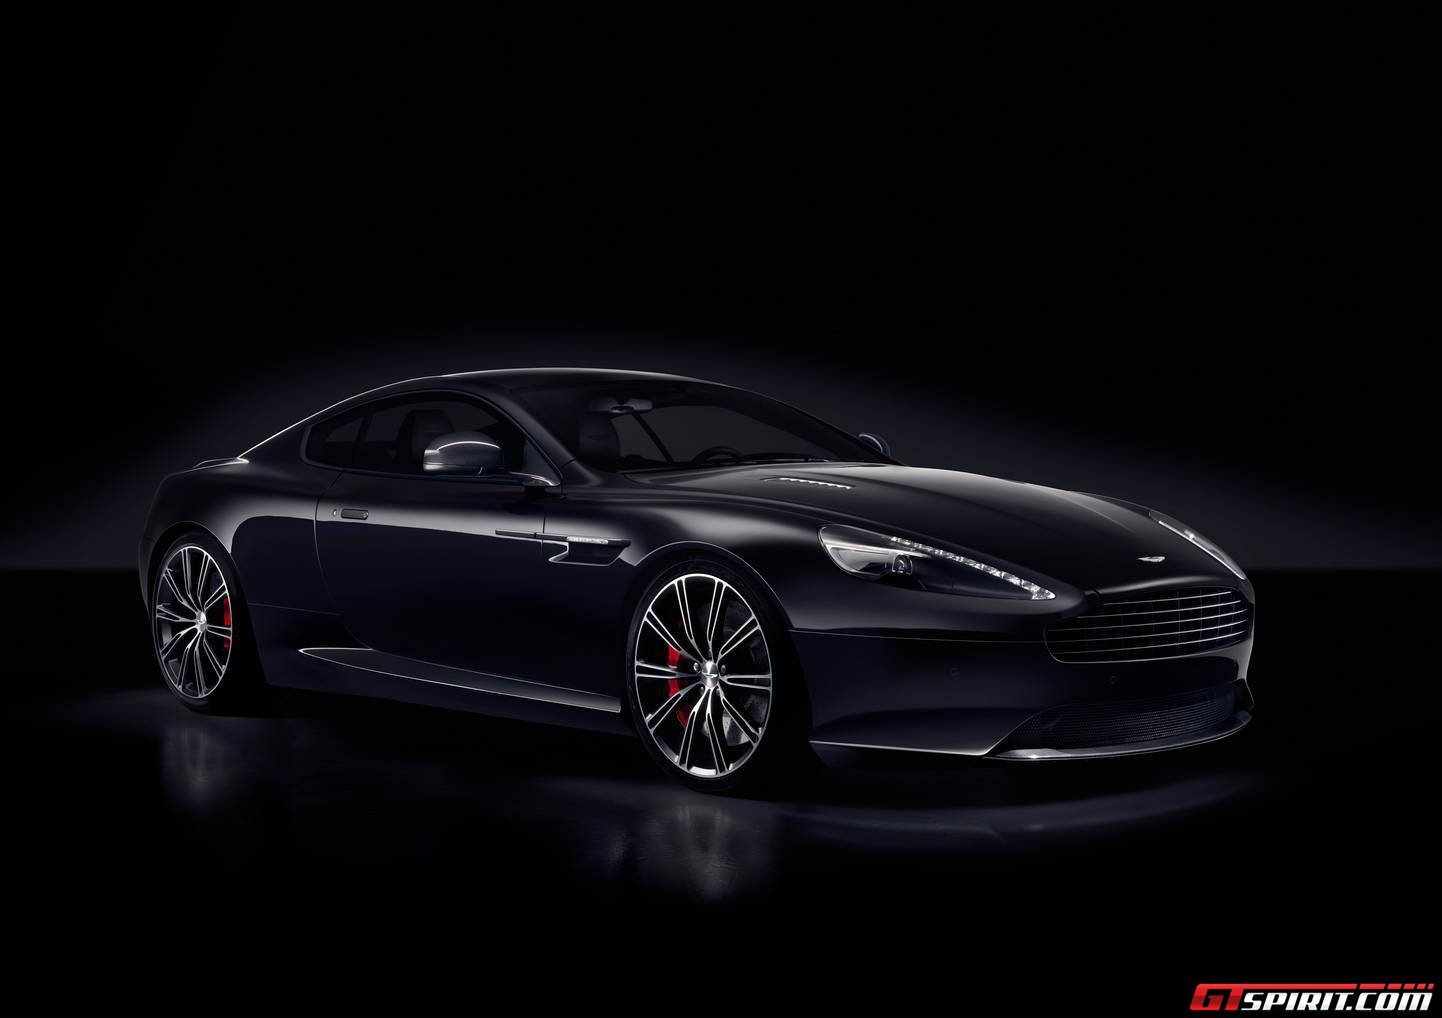 Official Aston Martin Db9 Carbon Black And Carbon White Edition